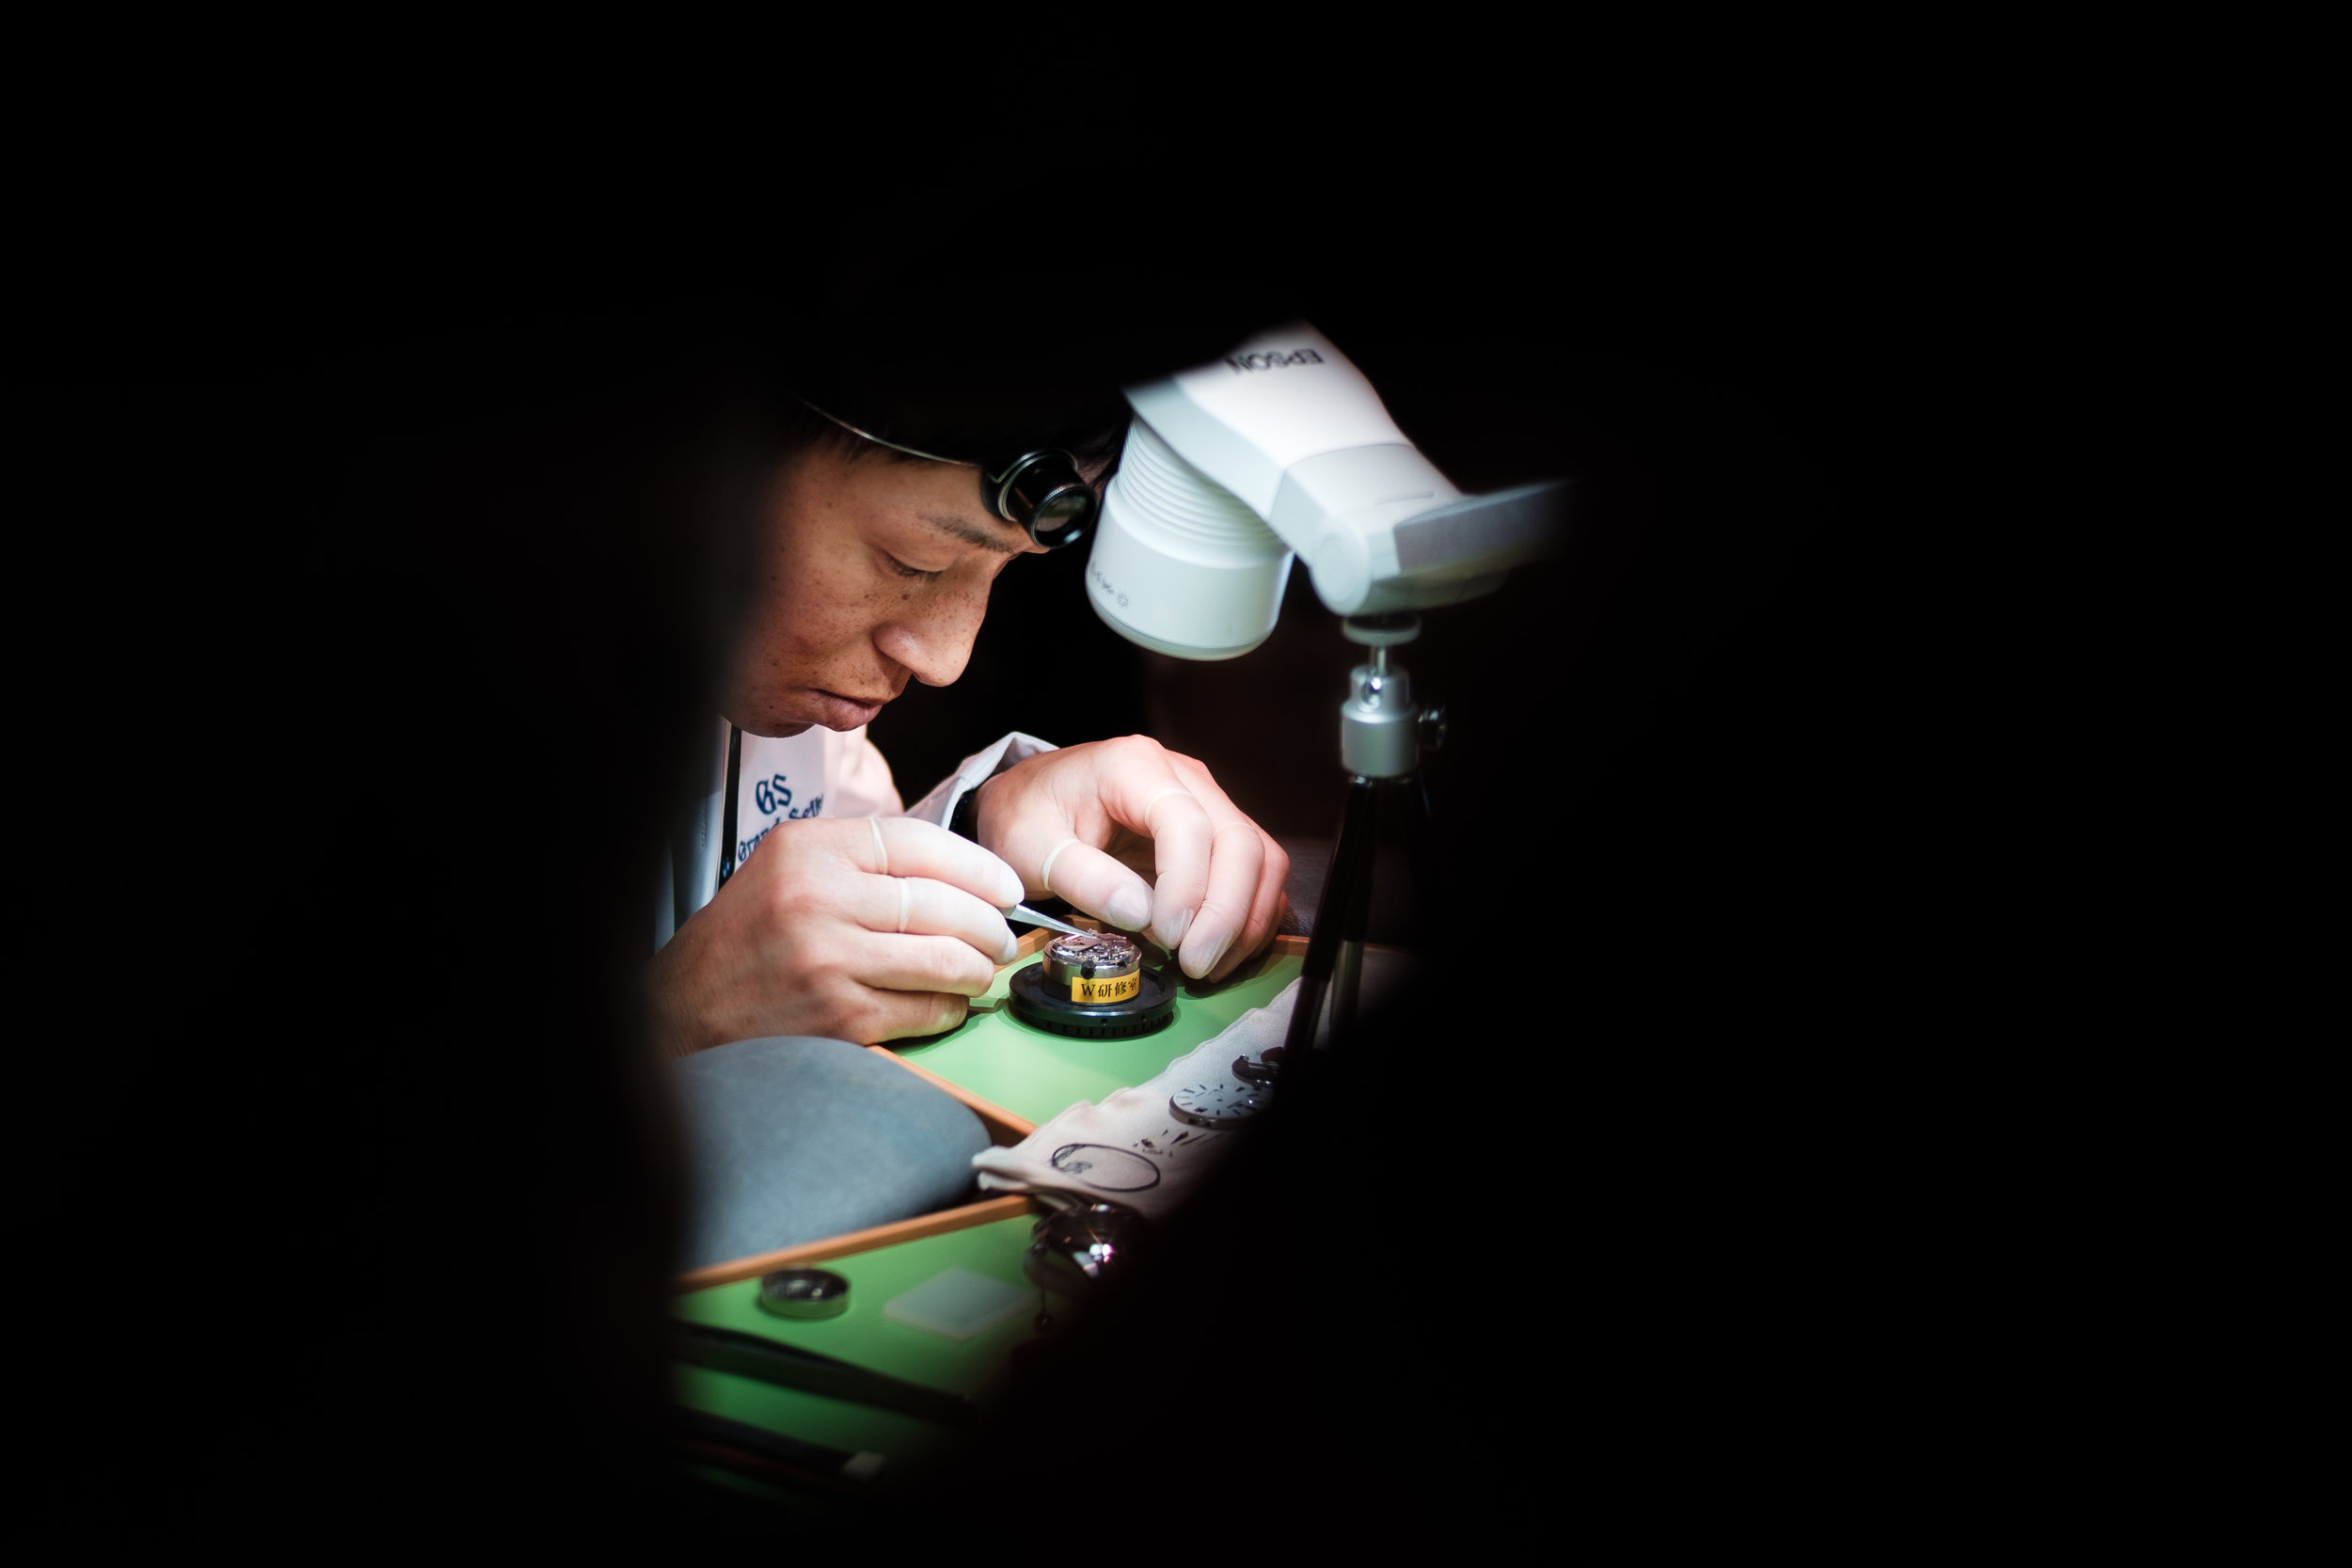 The Master Watchmaker at work.